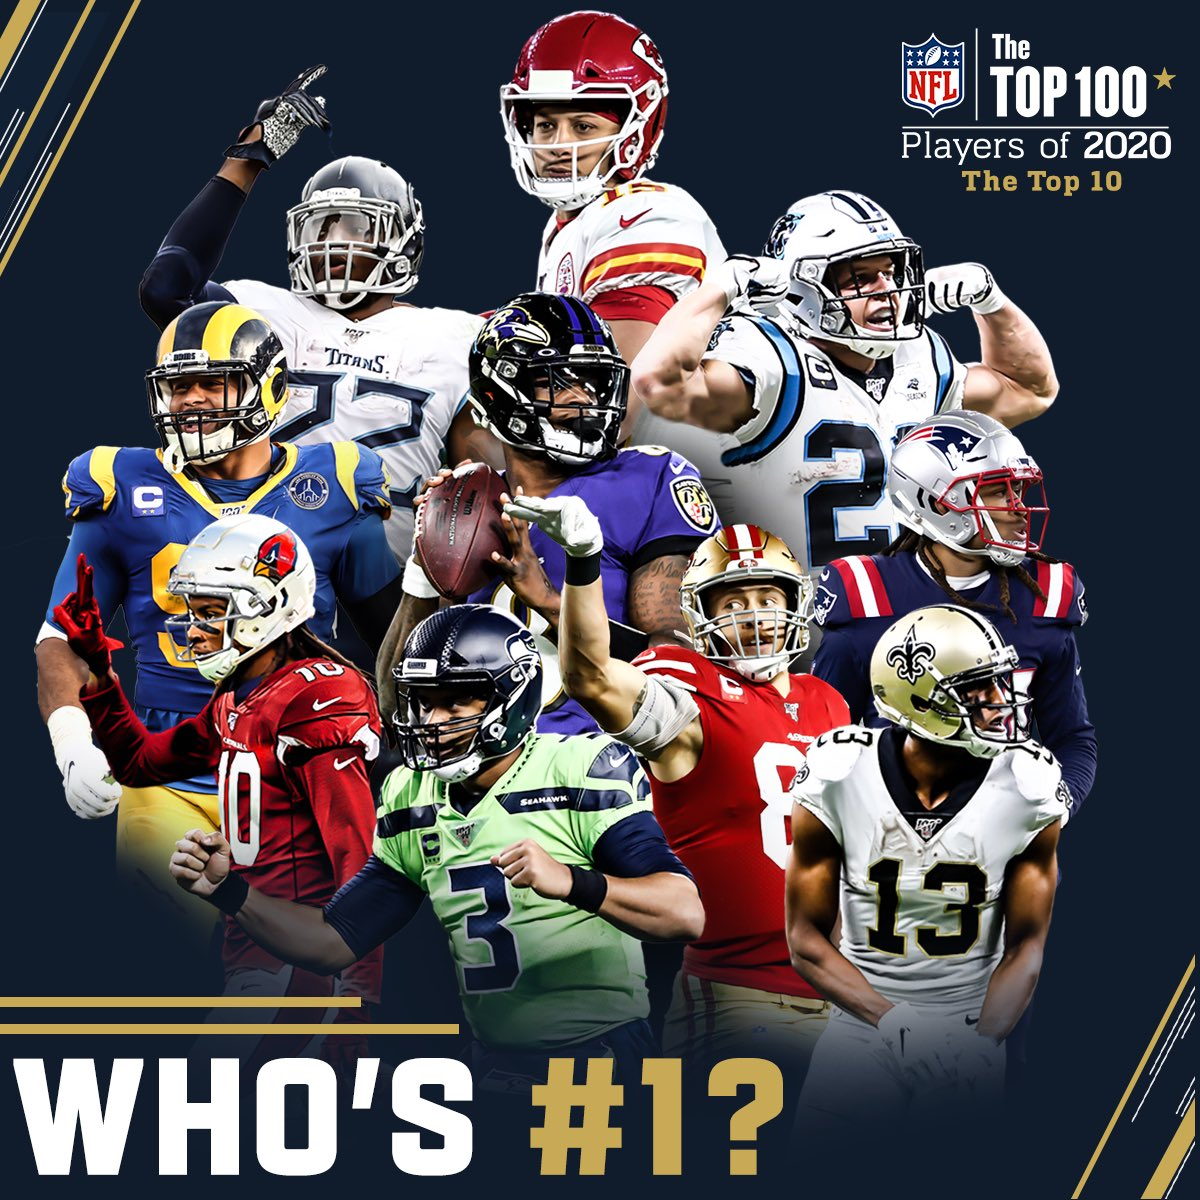 Who do you think takes the top spot? Top 10 (NOT in order): Aaron Donald, Derrick Henry, Patrick Mahomes, Russell Wilson, Lamar Jackson, Michael Thomas, Christian McCaffrey, George Kittle, DeAndre Hopkins, Stephon Gilmore. Exact order will be released @ 8pm EST. #NFLTop100